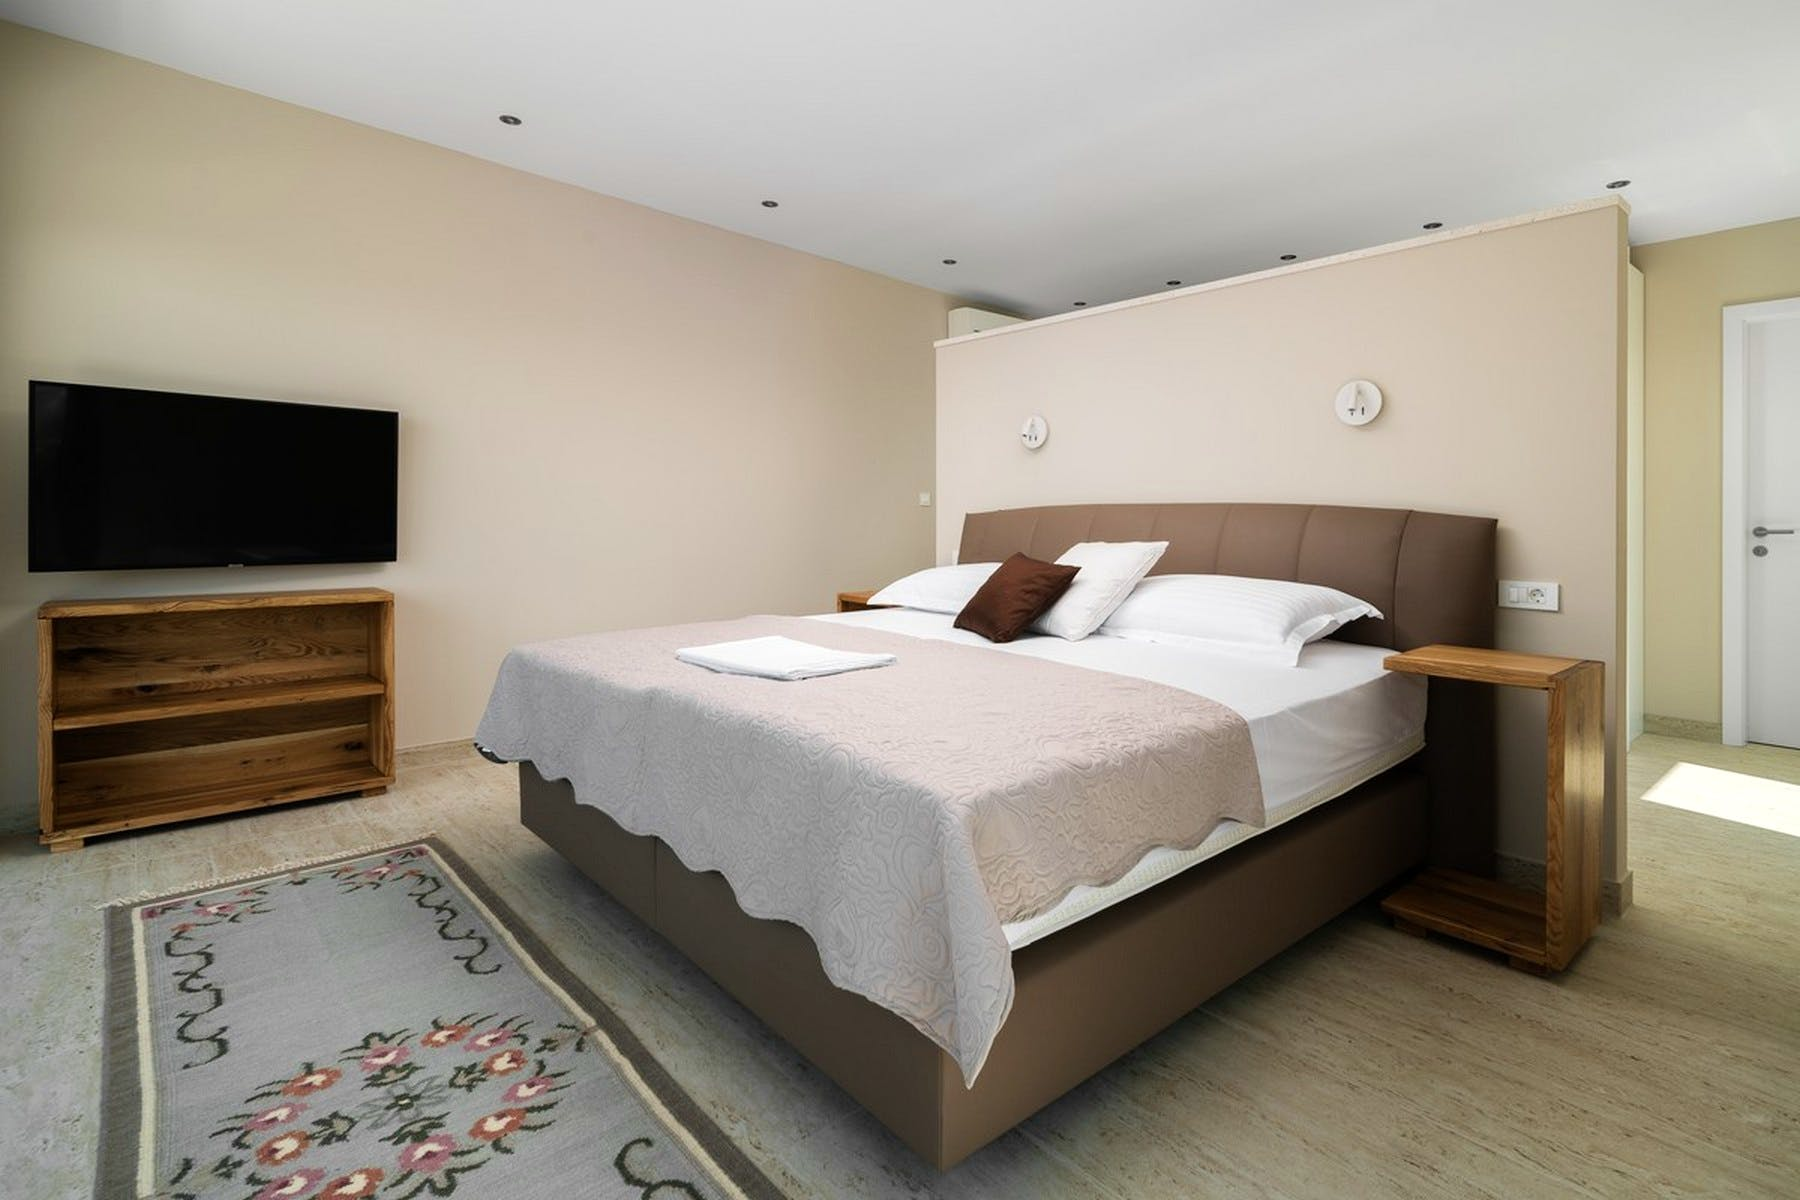 Large, comfortable double bedroom